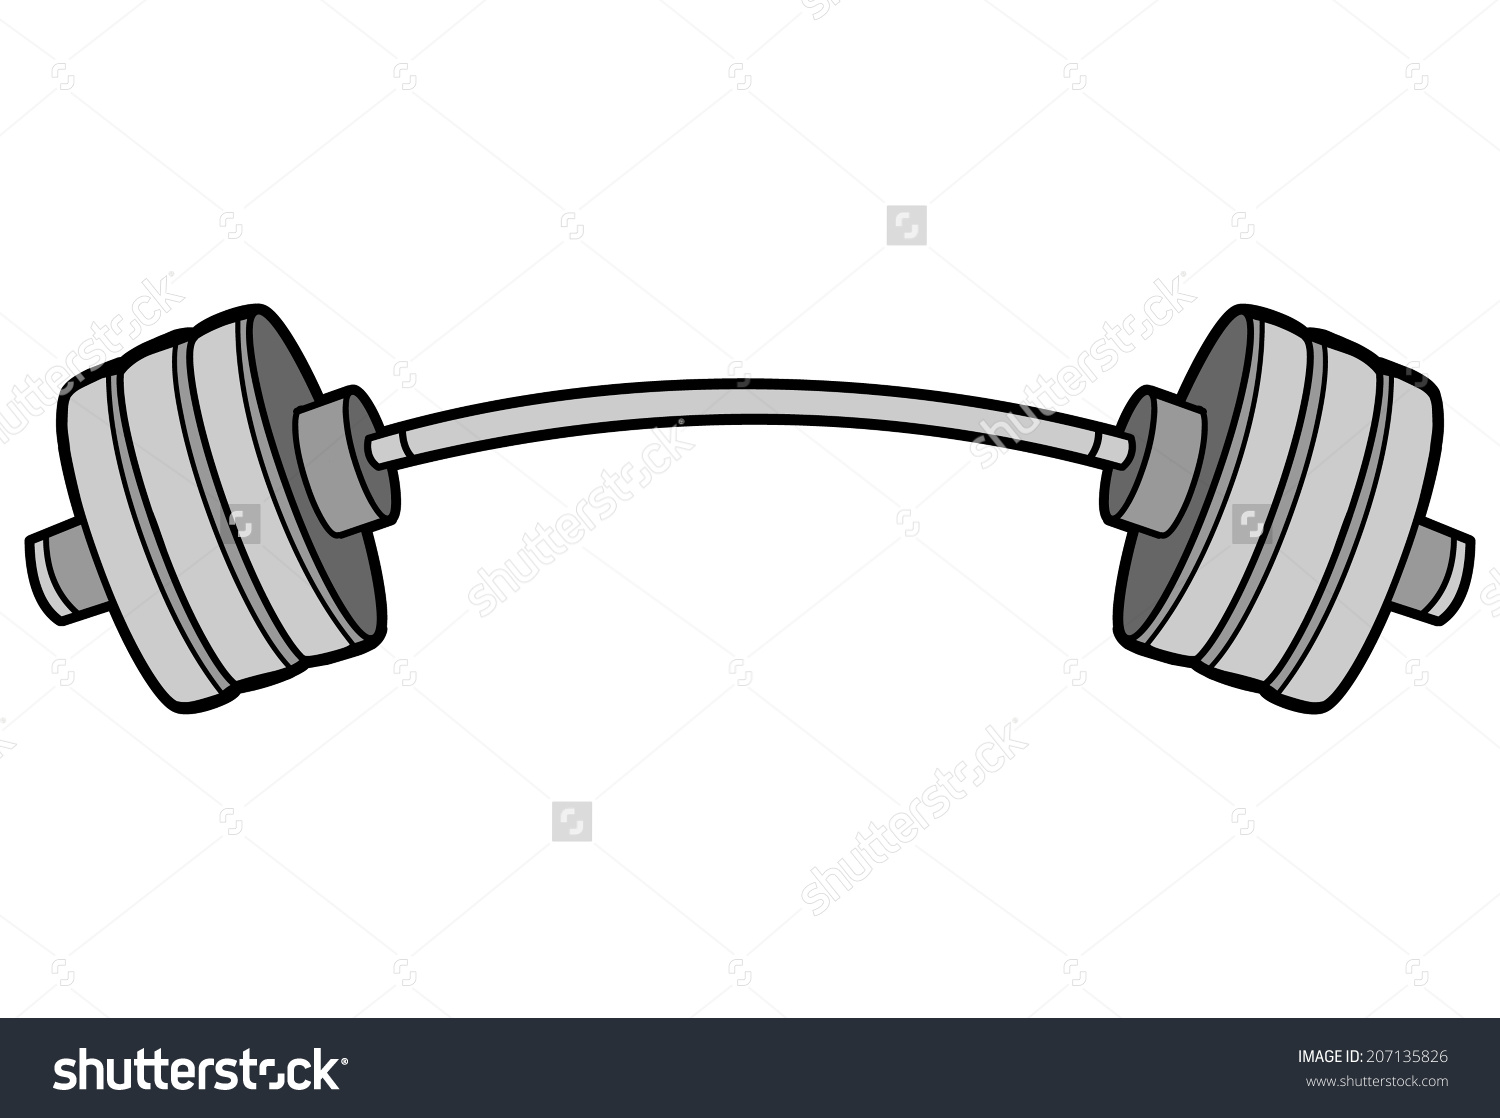 Barbell Clipart. Save to a lightbox .